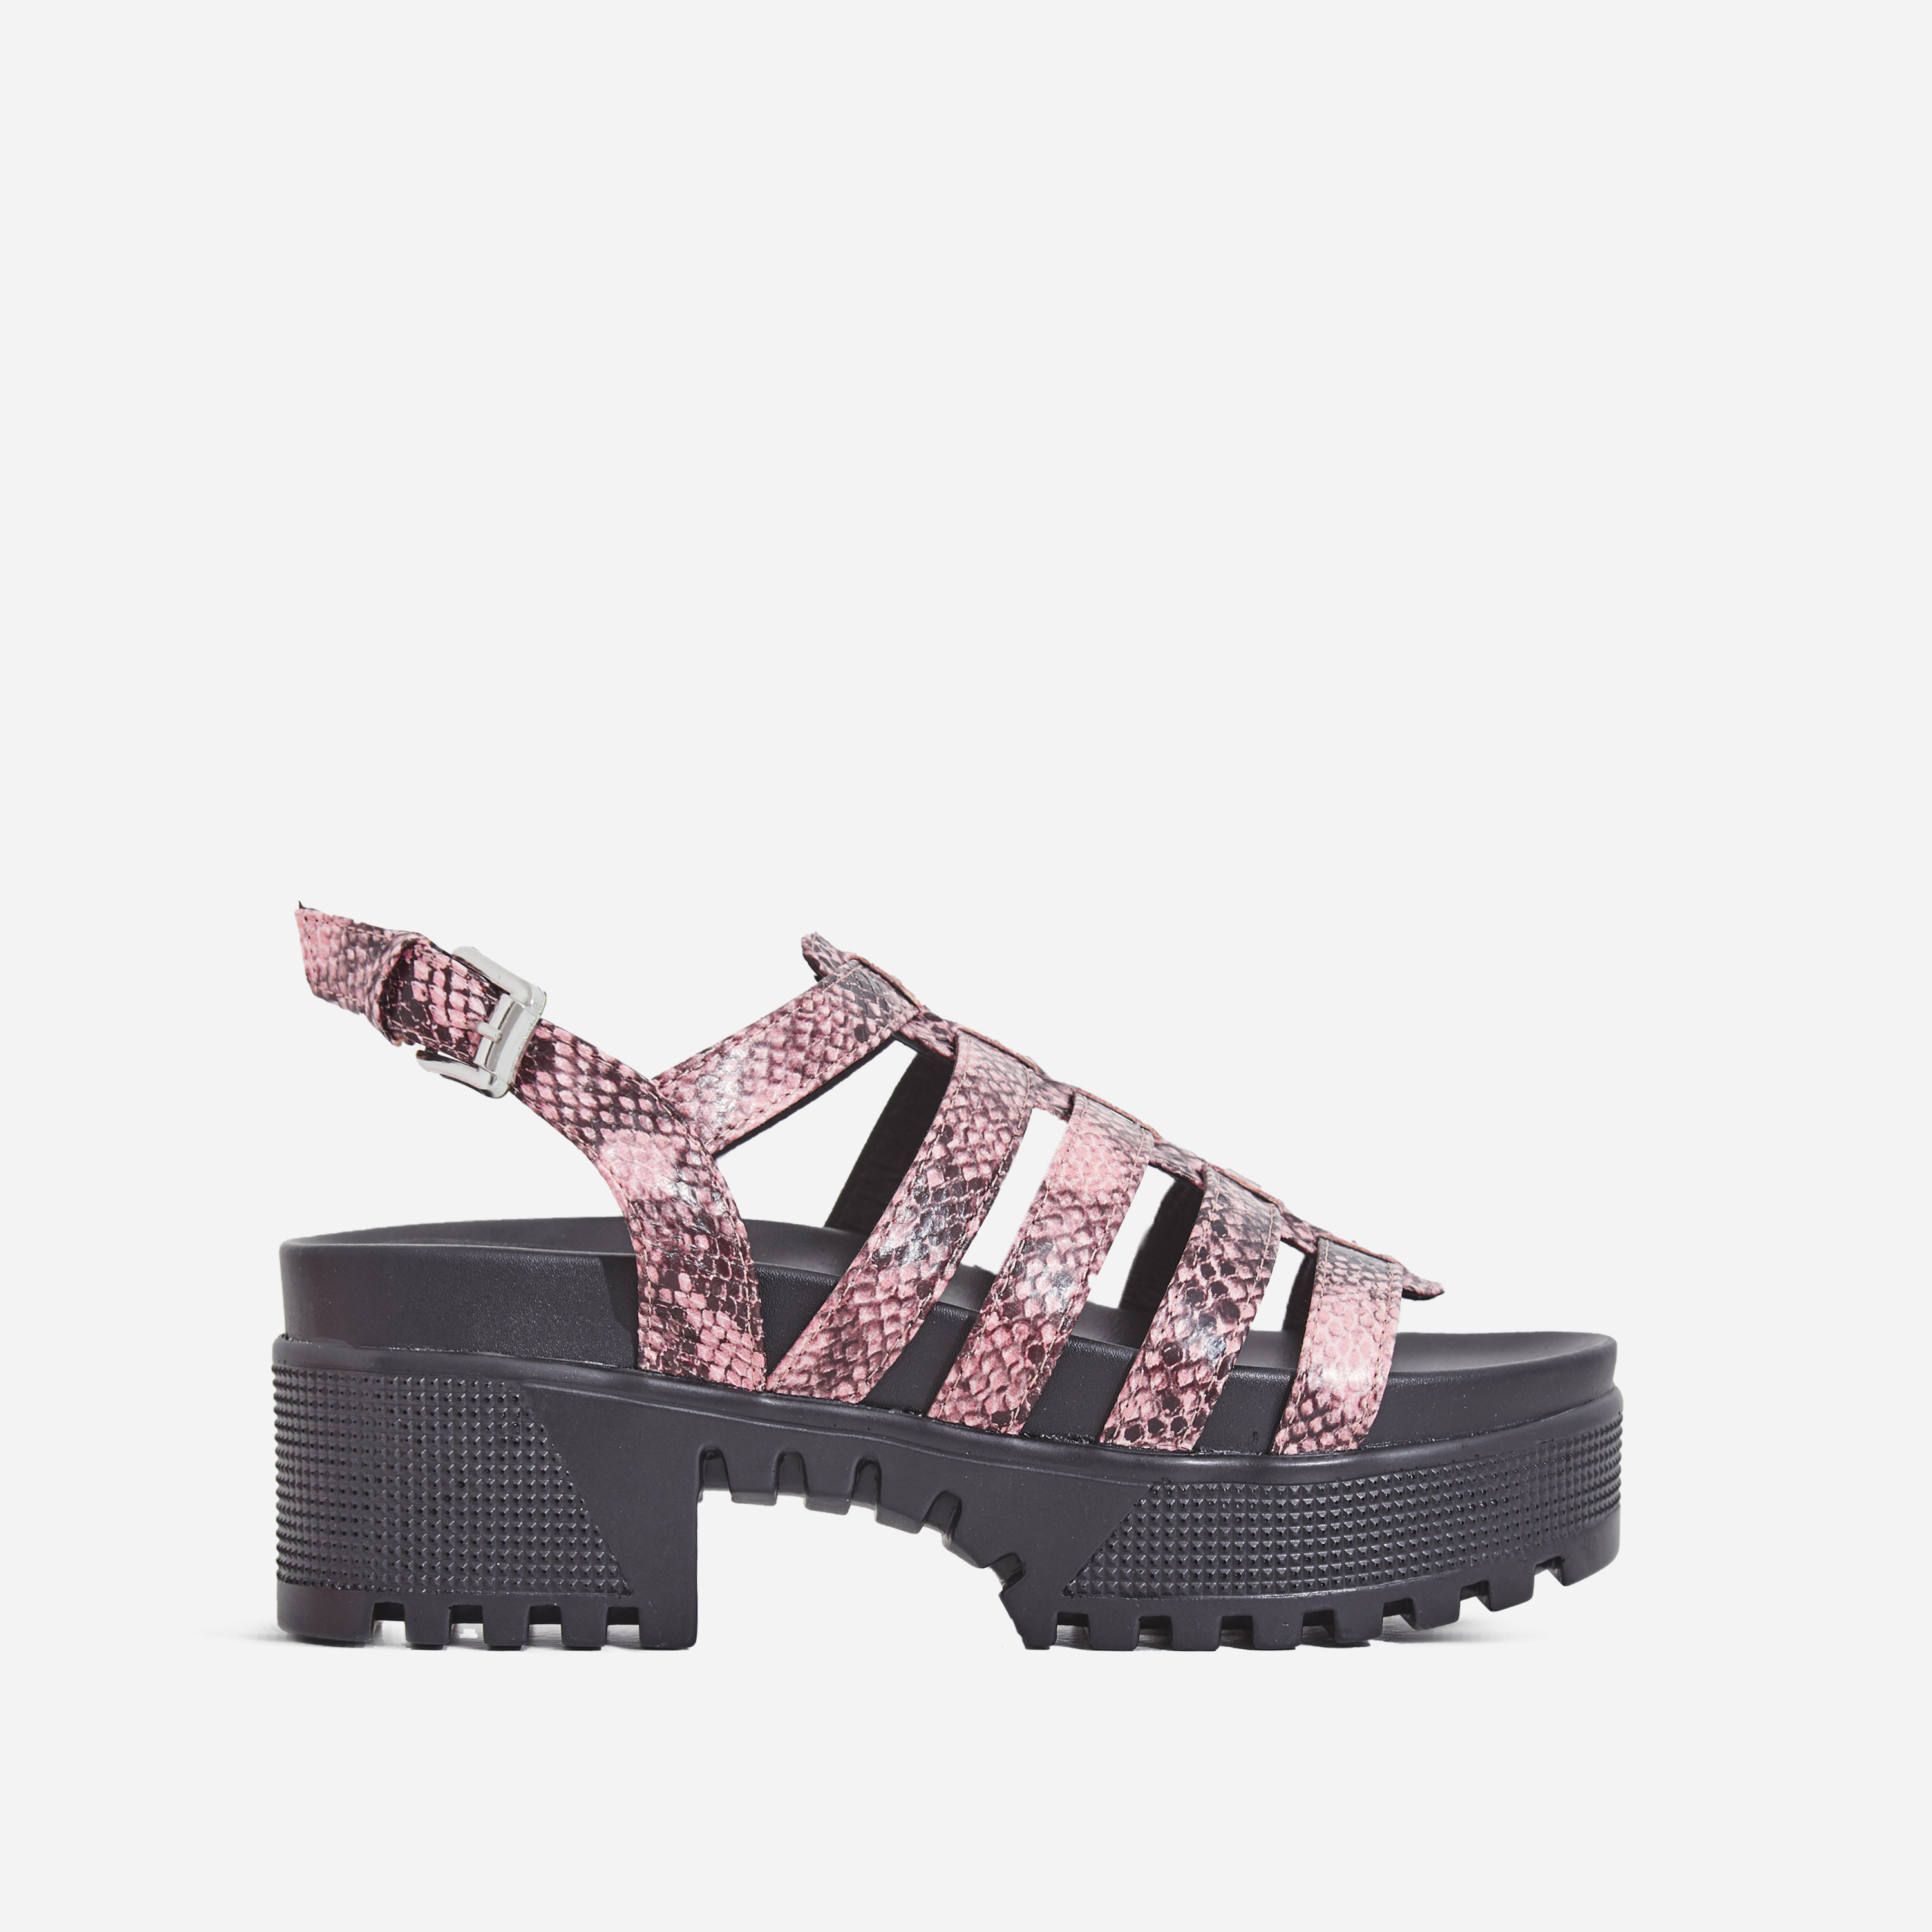 Poker Chunky Sole Sandal In Pink Snake Print Faux Leather